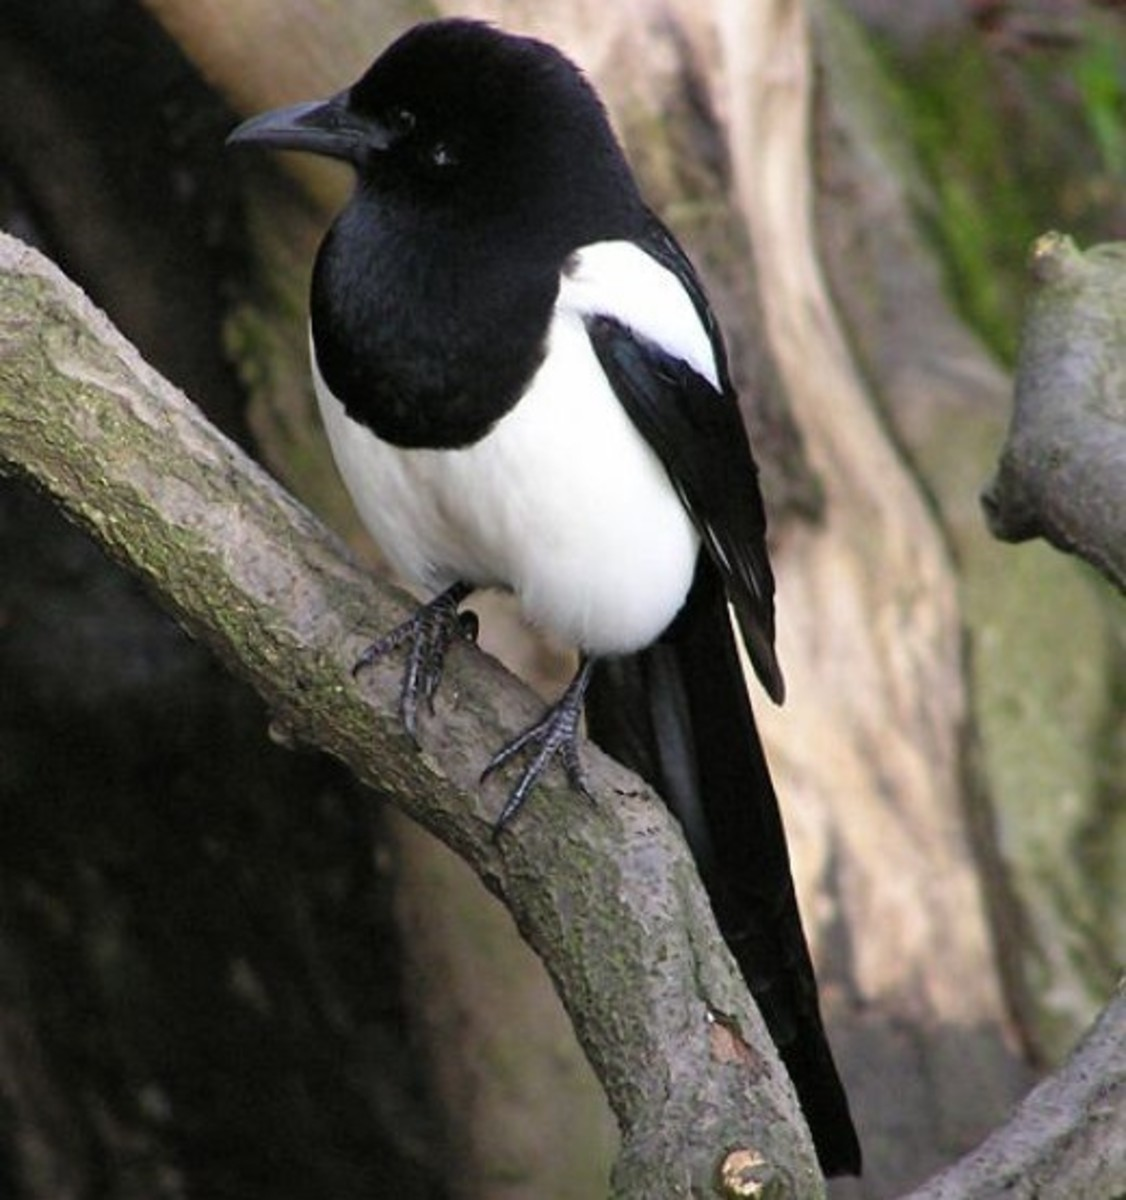 A Magpie or Pica. This bird eats almost anything.